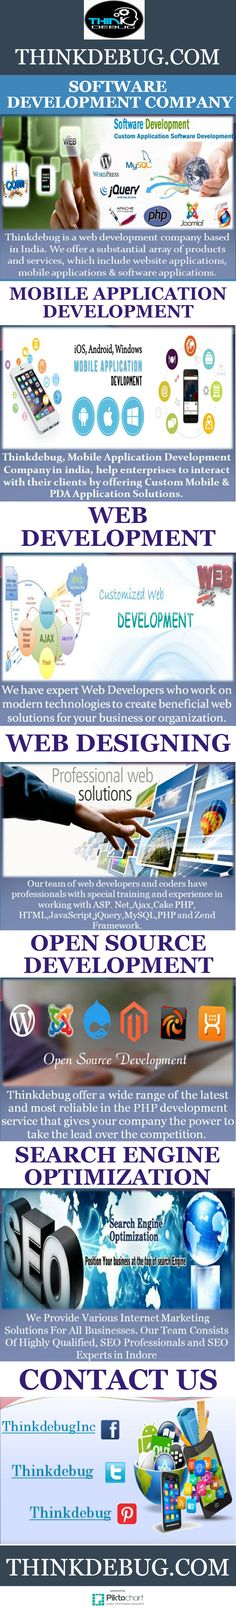 Your website is the representation of your business or organization to the world. We develop the website or portal with complex functions and makes your ideas into a web application. At our #web_Development Company in Indore offers you wide range of #web_design & development services in PHP, Angular.Js, Meteor.Js secured web applications etc., The lack of a proper website can easily put off many prospective customers even without your knowledge.  More visit: http://thinkdebug.com